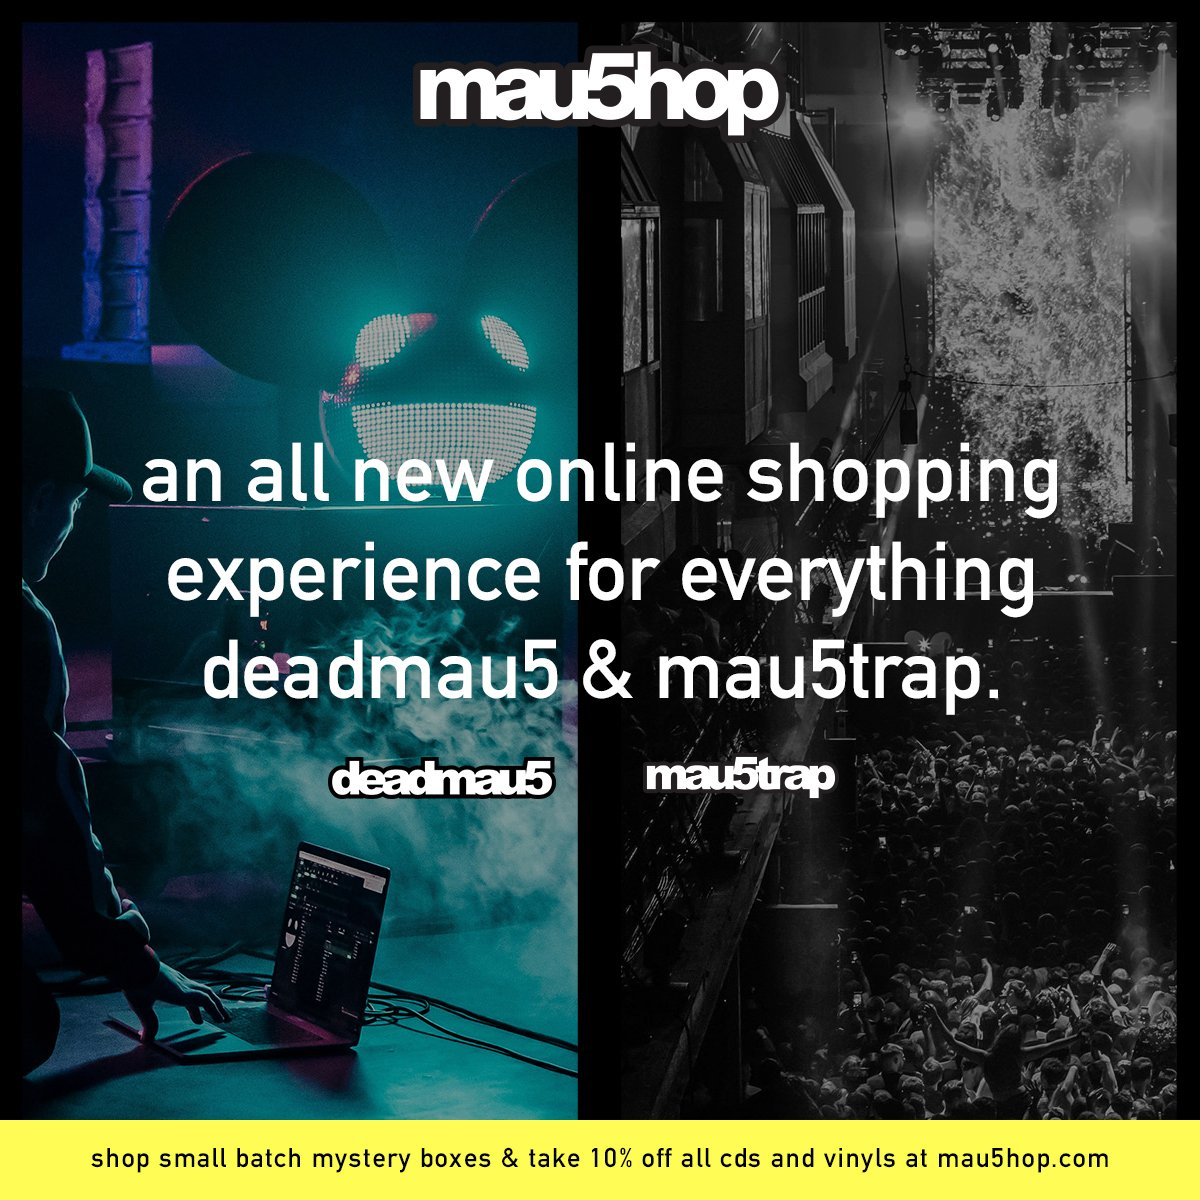 new mau5hop is open for business! https://t.co/F6g16UhvvO https://t.co/rMZ85757F2